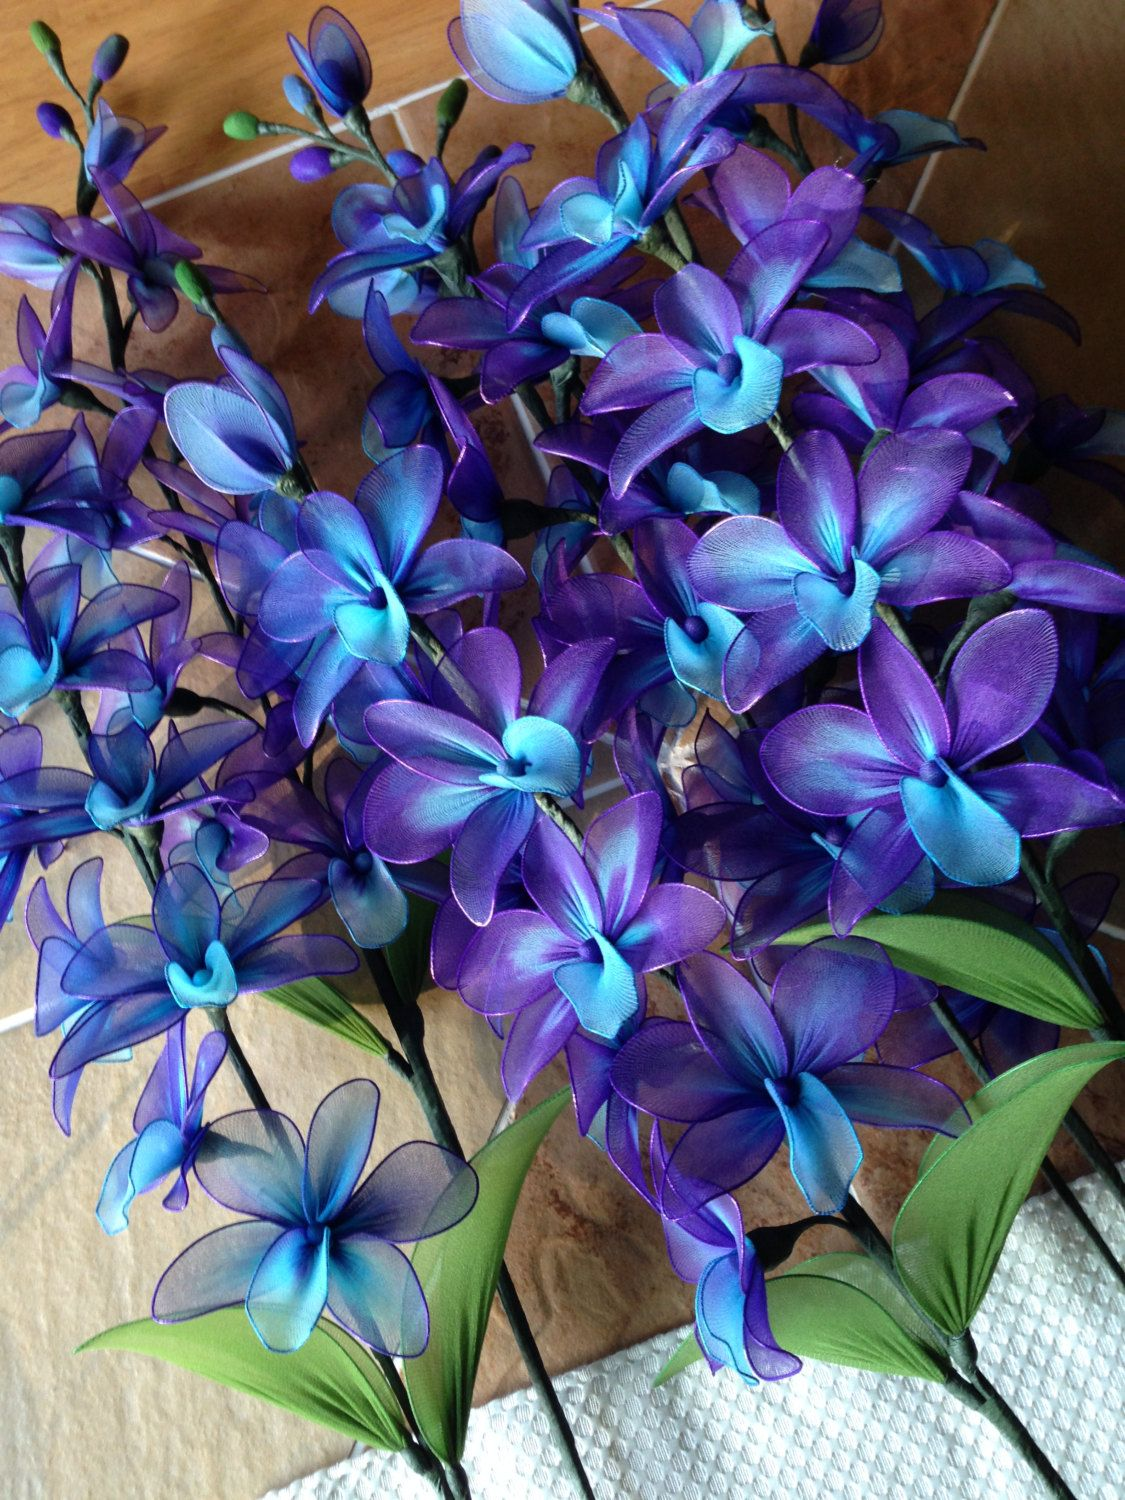 Purple and blue flowers etamemibawa purple and blue flowers izmirmasajfo Choice Image